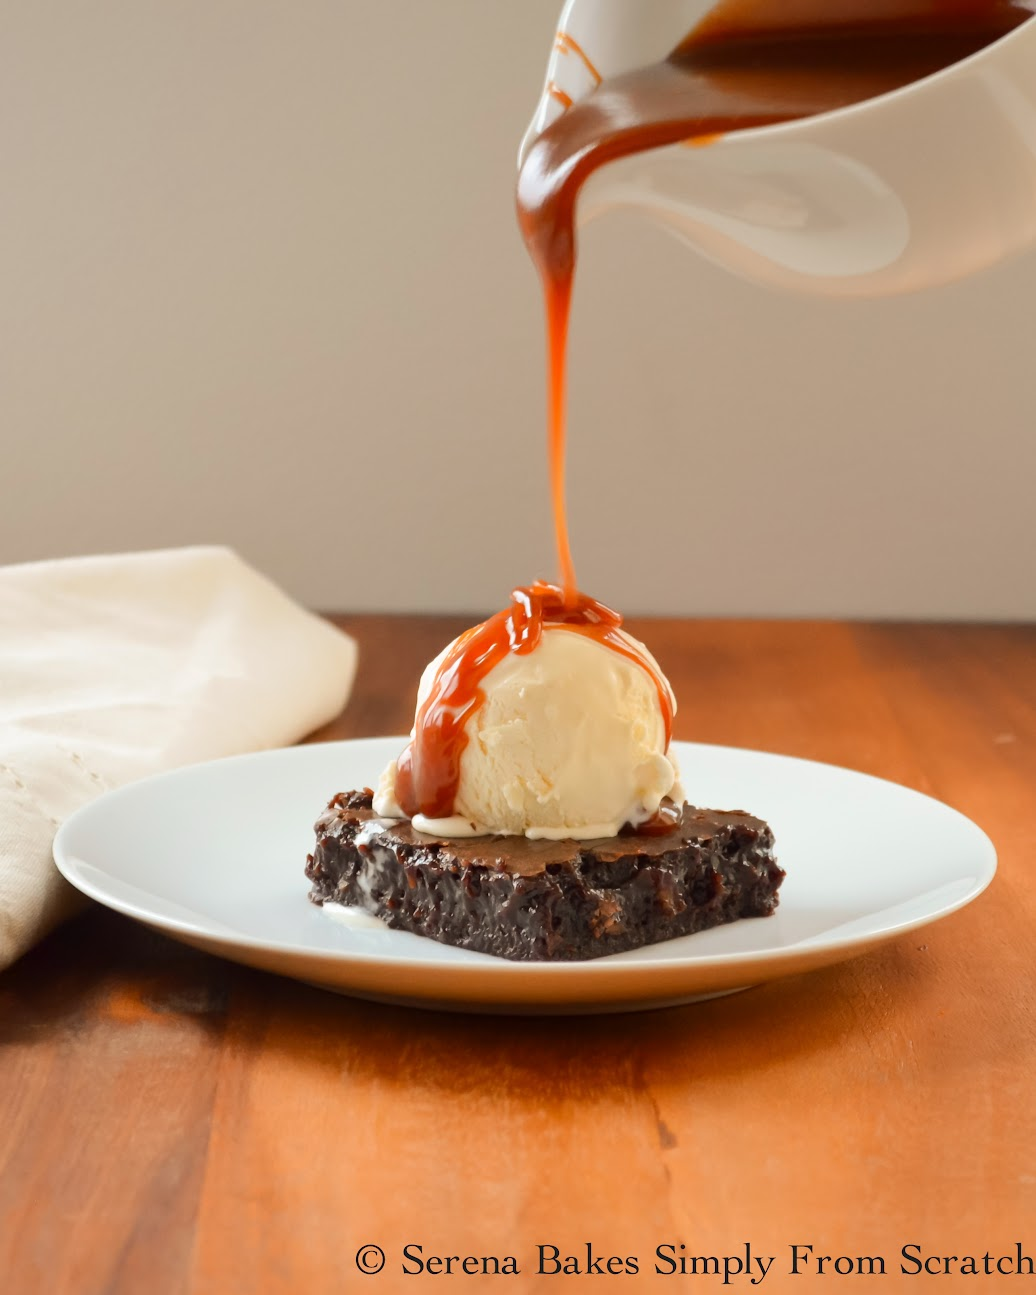 Hawaiian-Host-Dark-Chocolate-AlohaMac-Brownies-Ice-Cream-Caramel-Sauce.jpg